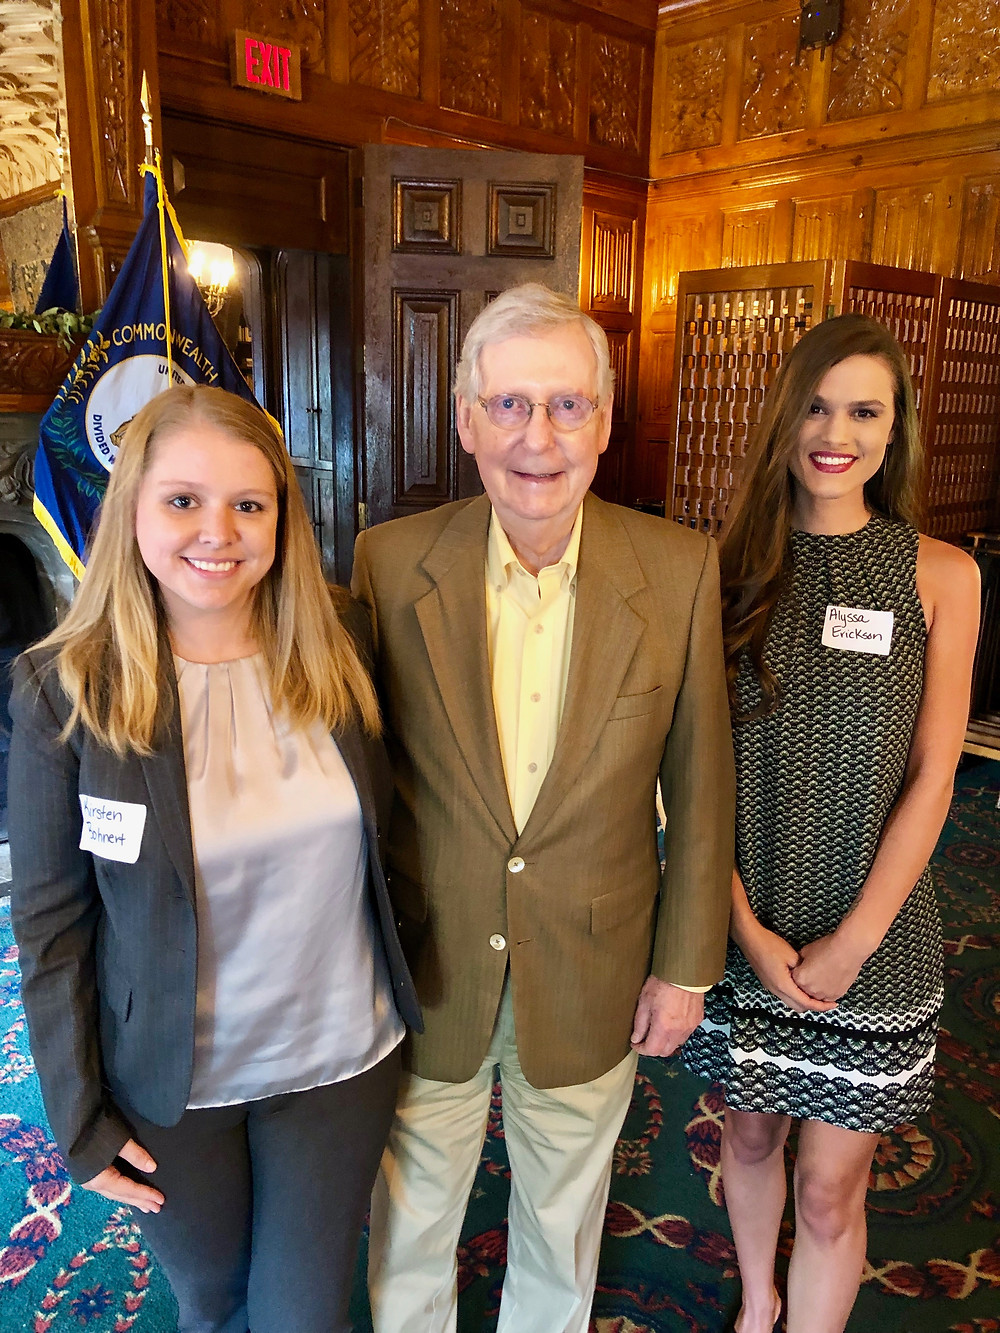 Kentucky Hempsters co-founders Kirstin Bohnert (left) and Alyssa Erickson (right) with Senator McConnell (R-KY) at the Hemp Roundtable with USDA Secretary Sonny Perdue on July 2, 2019 in Lexington, Kentucky.